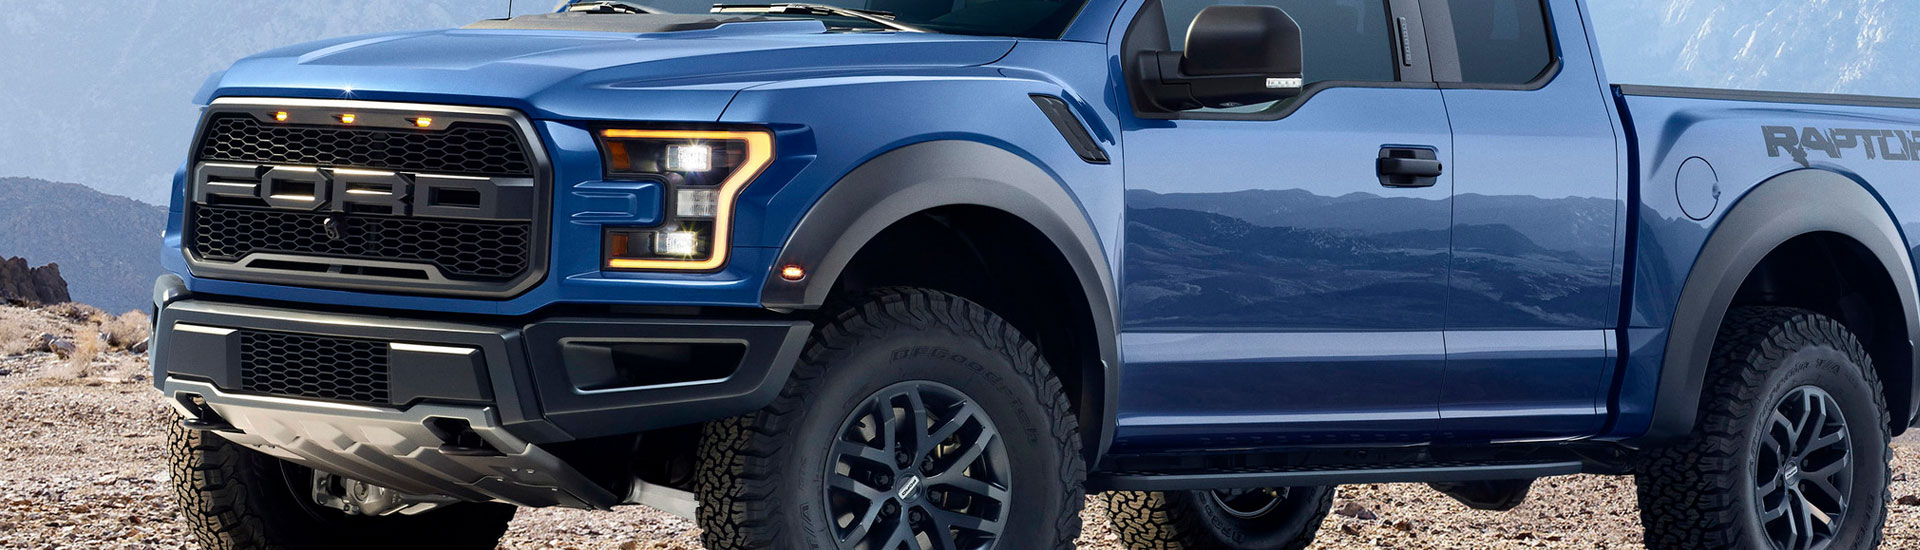 Ford F-150 Headlight Tint Covers